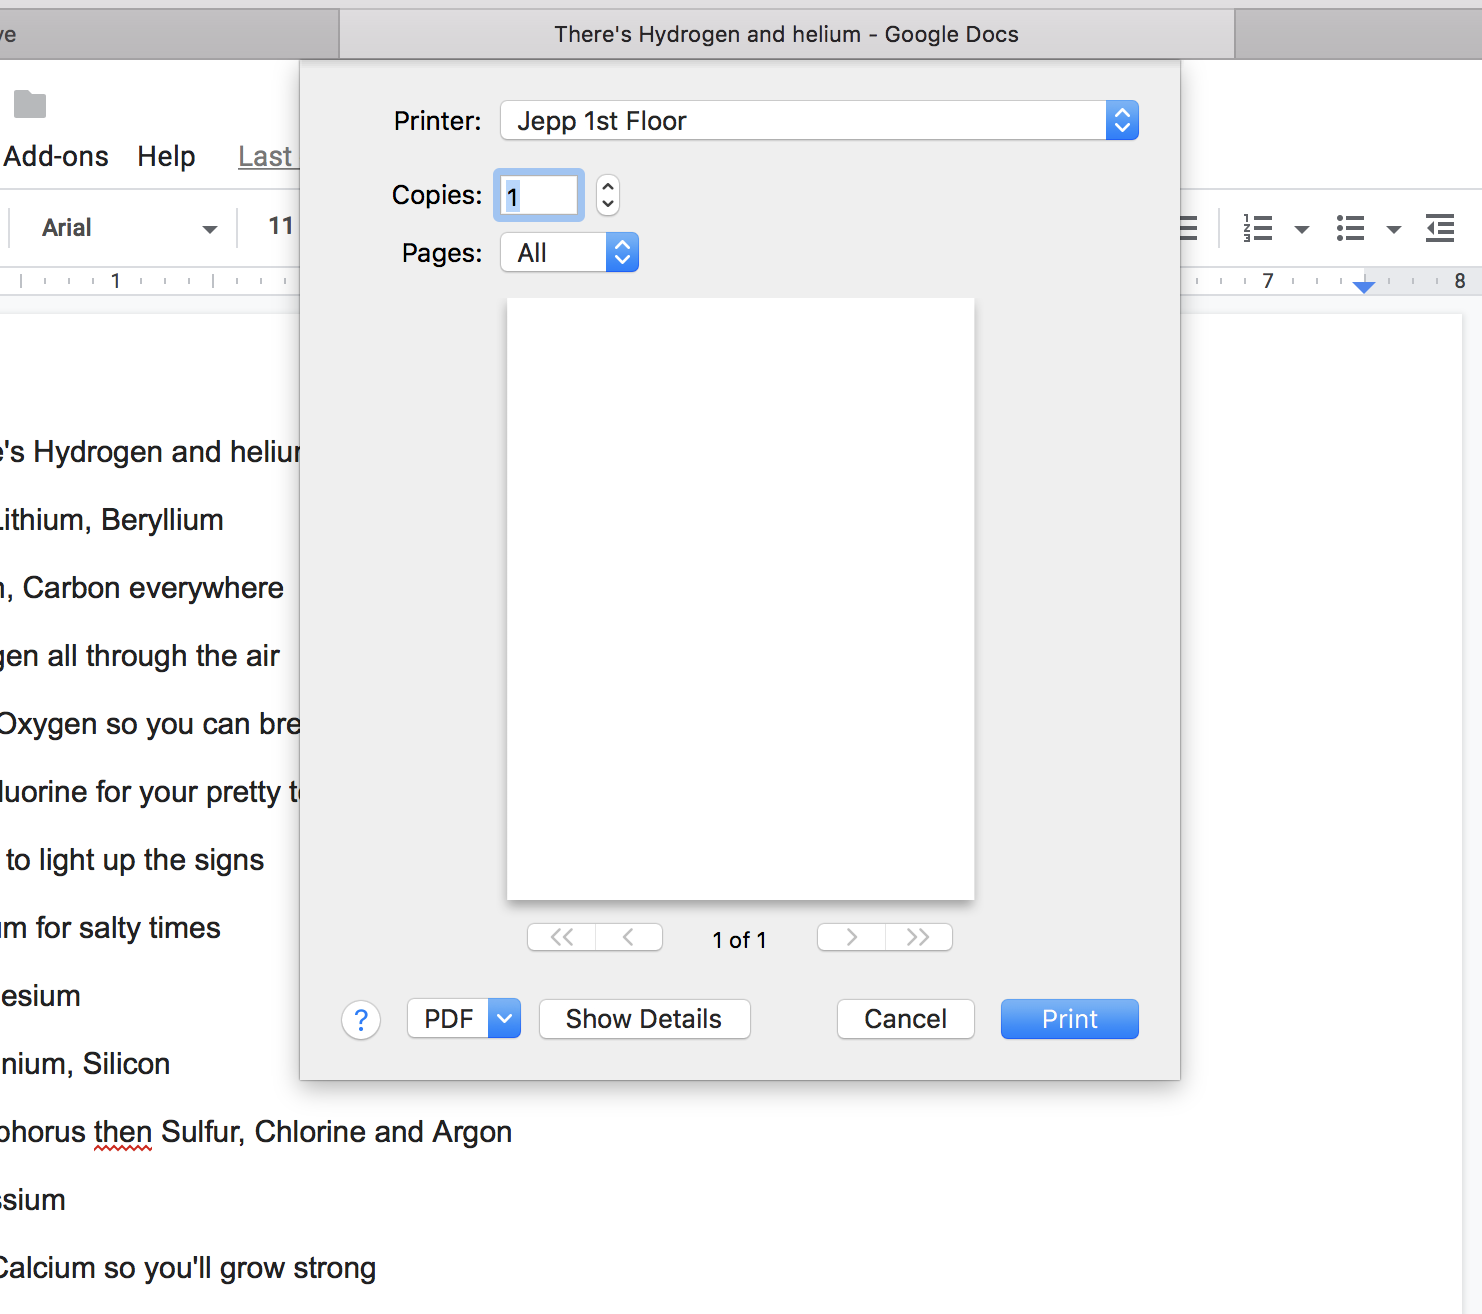 Print icon in Google Docs open a pop up to save the file